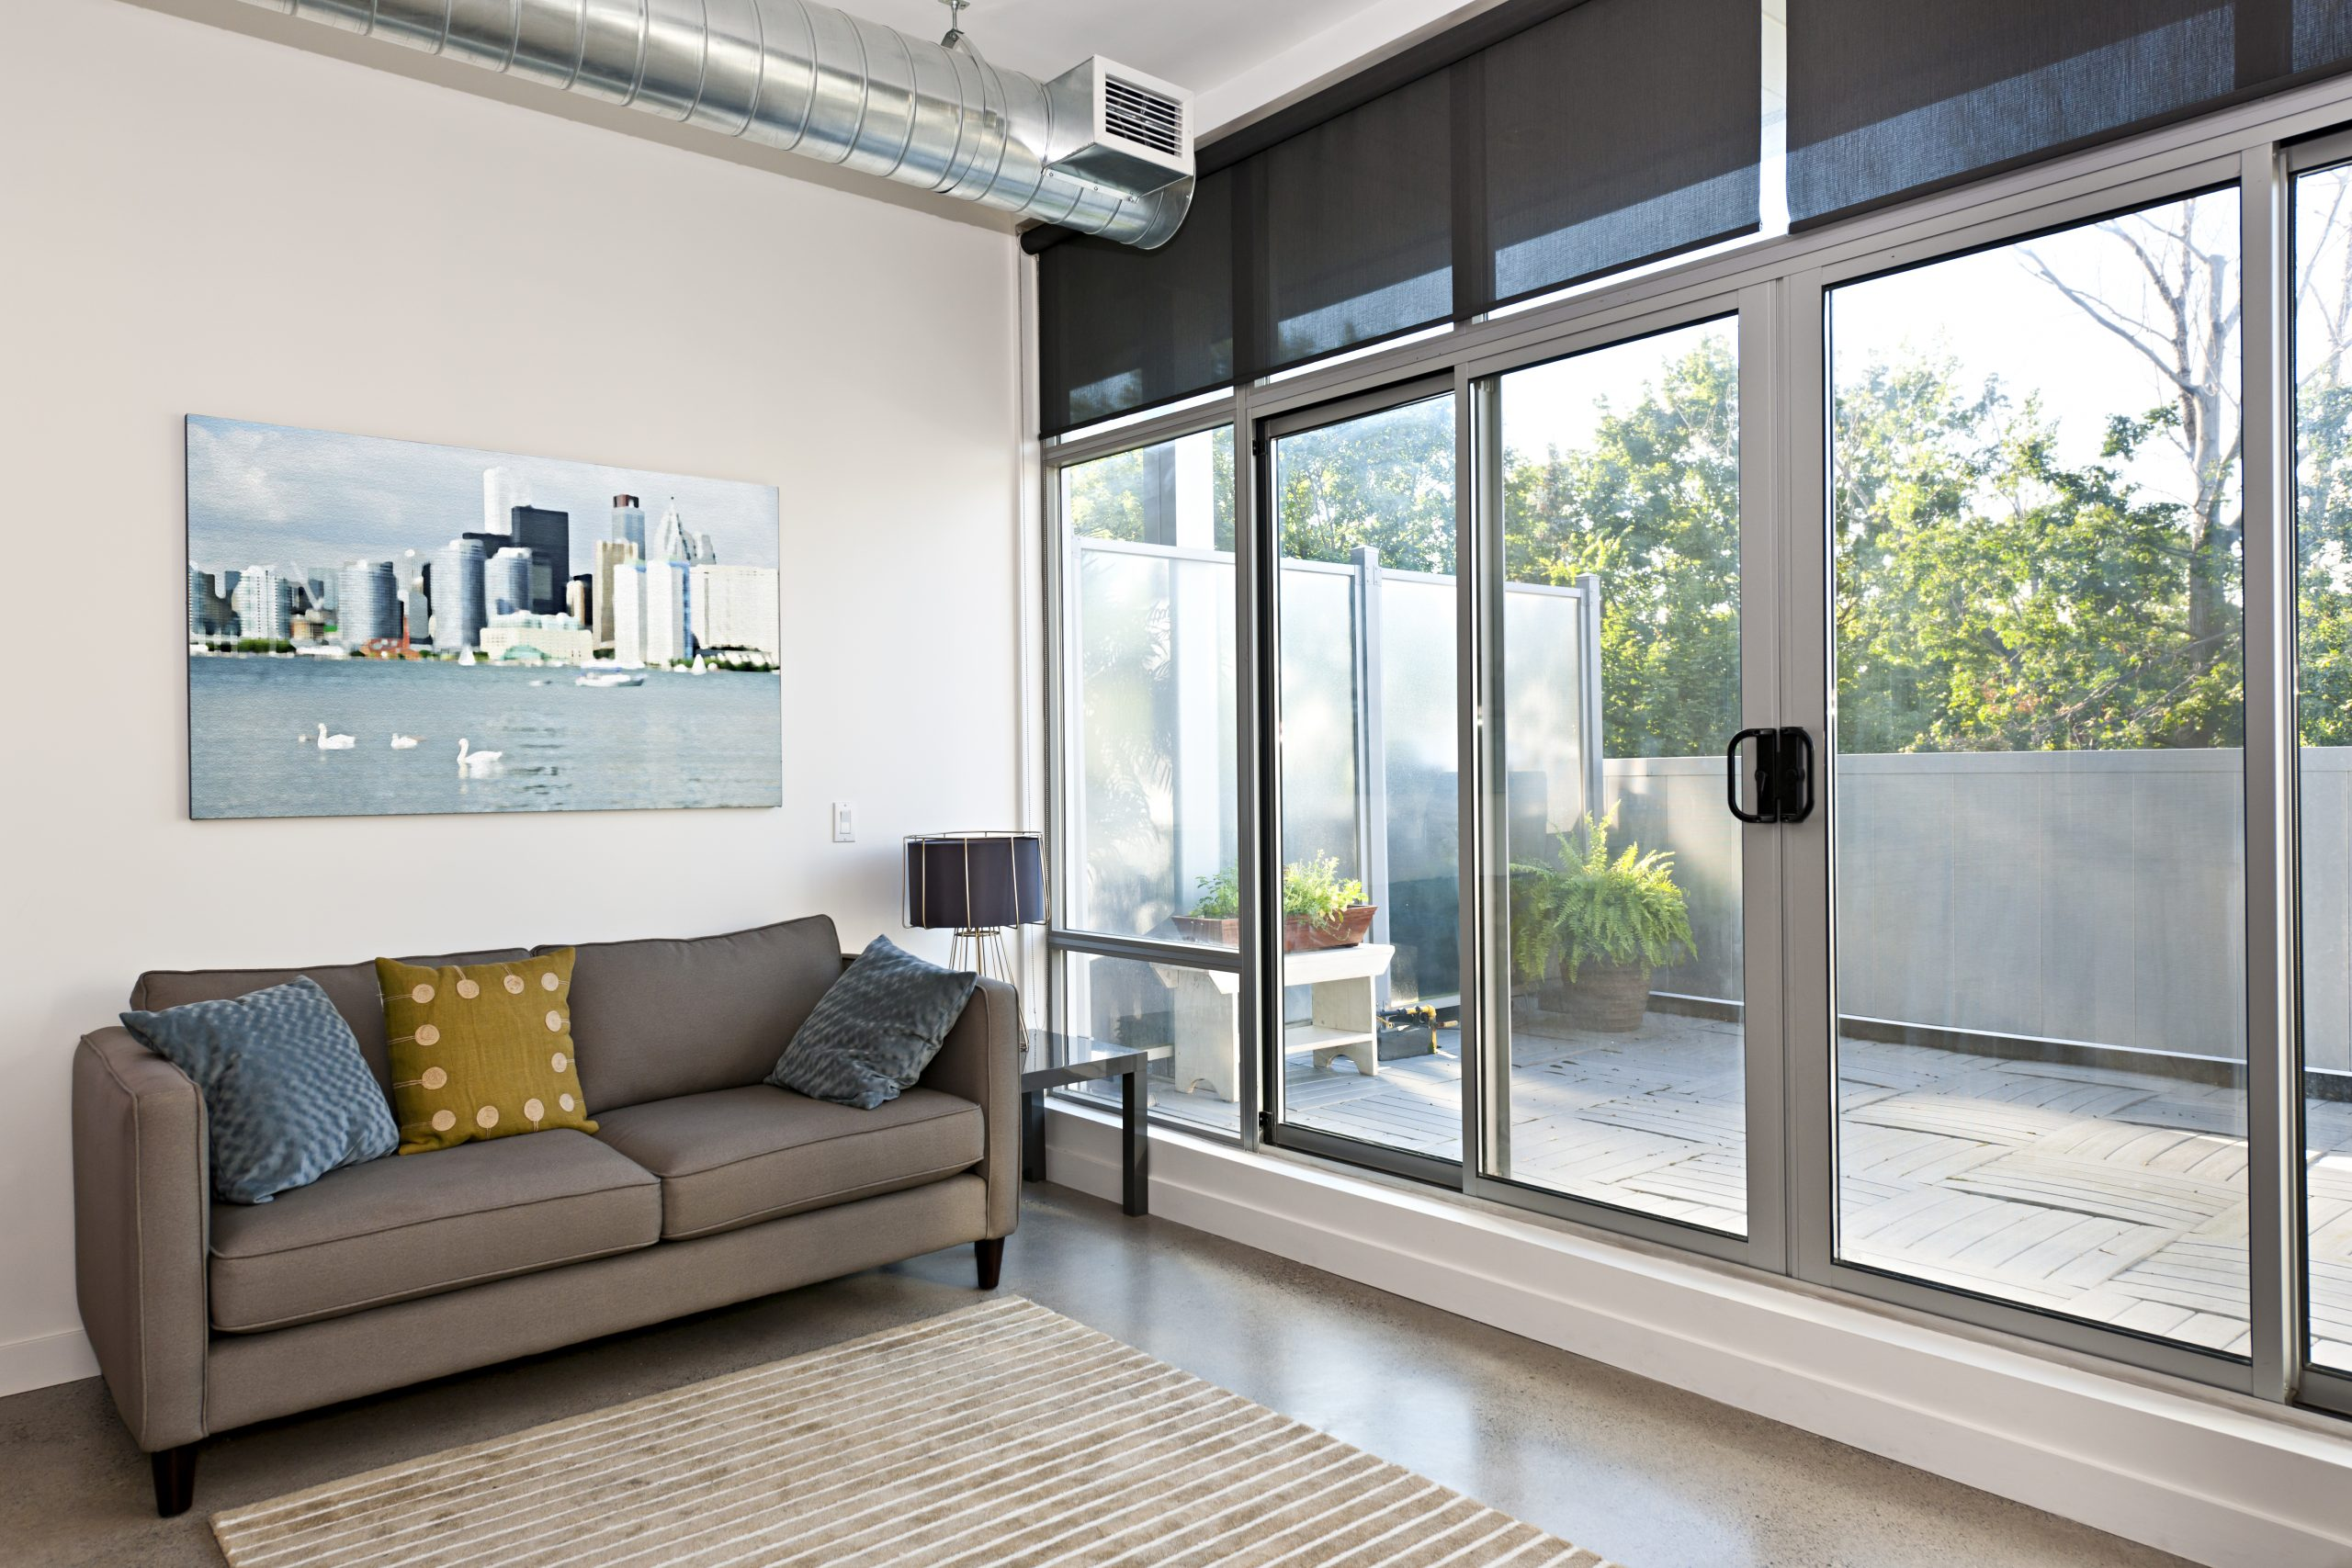 An image of a well-installed sliding glass patio door